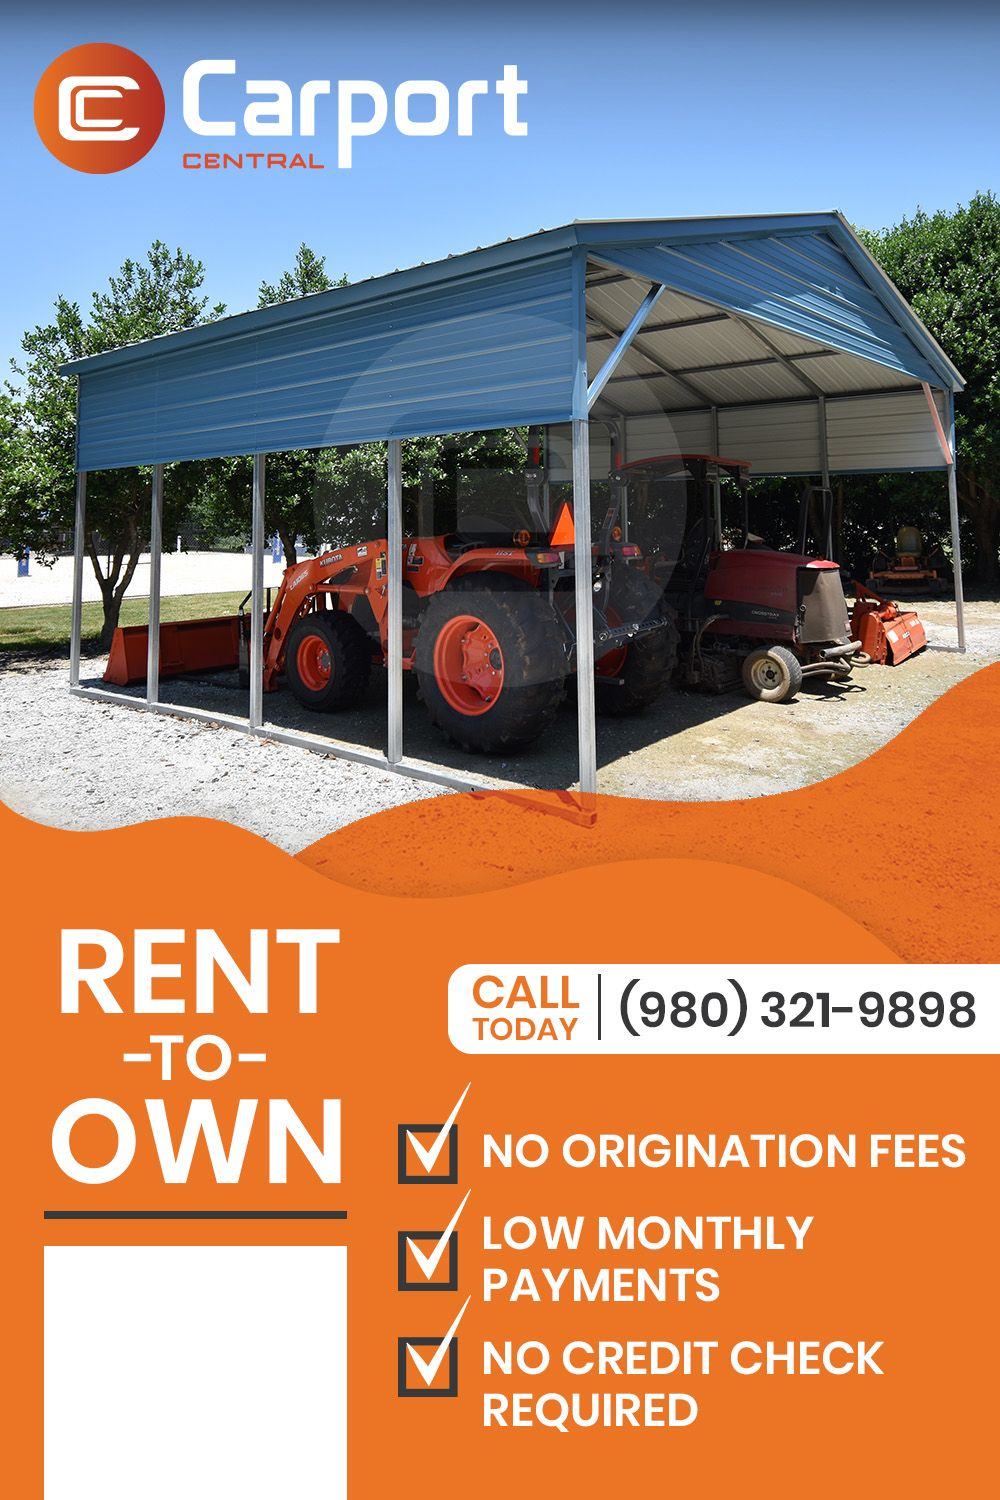 Rent To Own With Carport Central Carport Rv Cover Rent